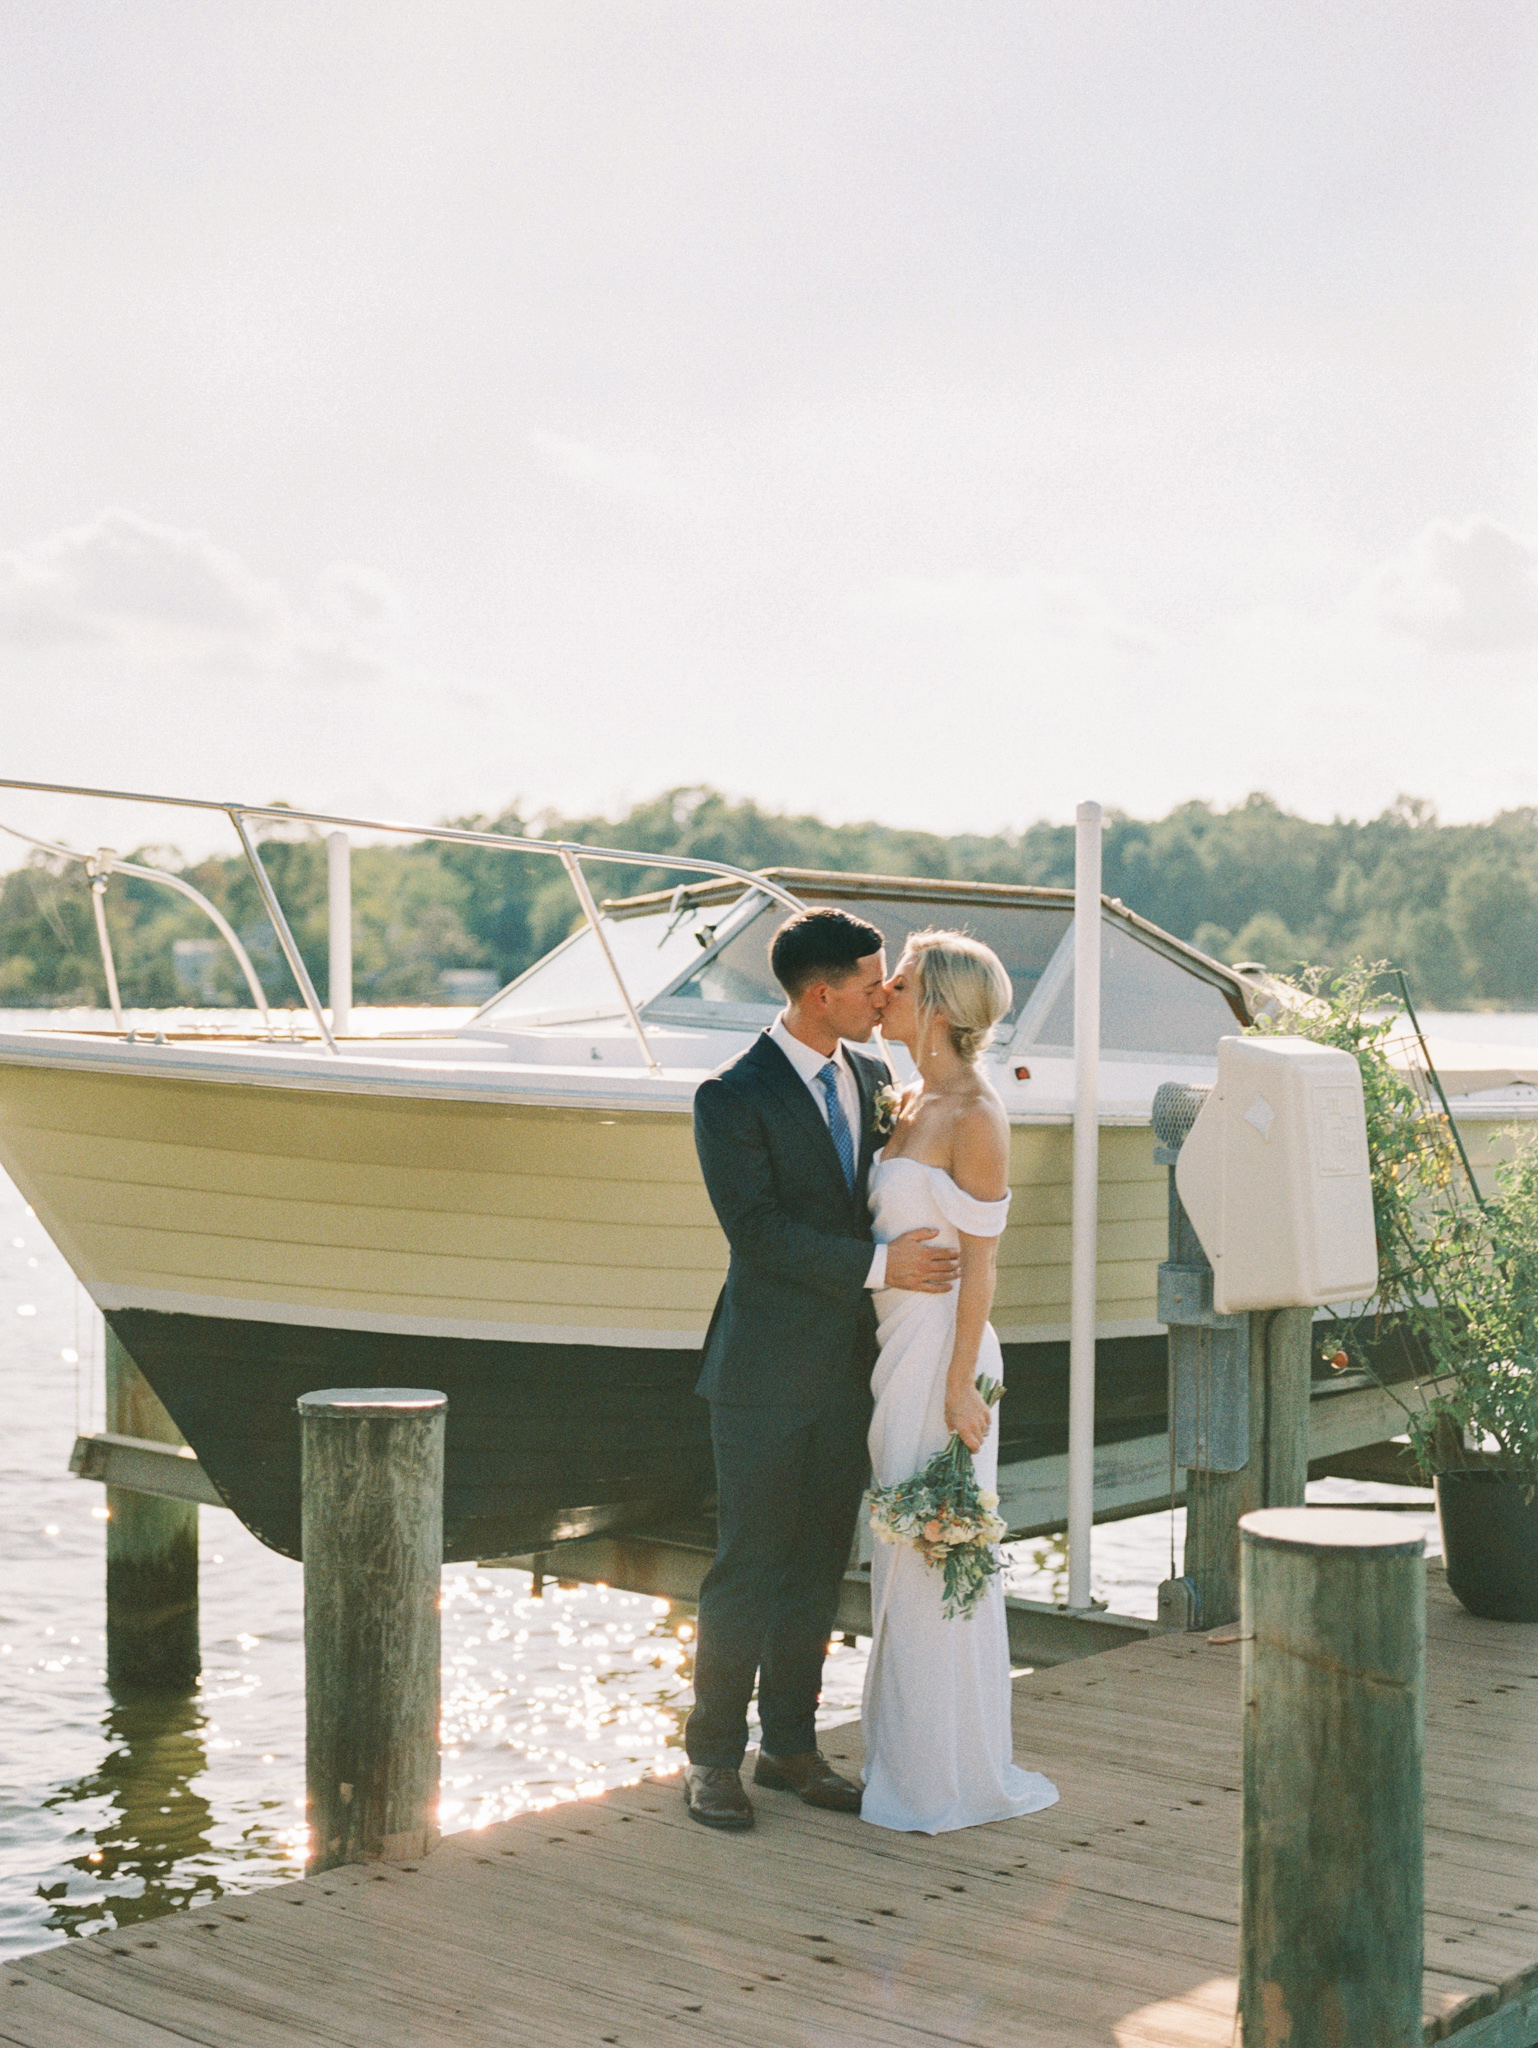 Gray_Joiner_e. losinio photography_annapolis-maryland-waterfront-elopement-278